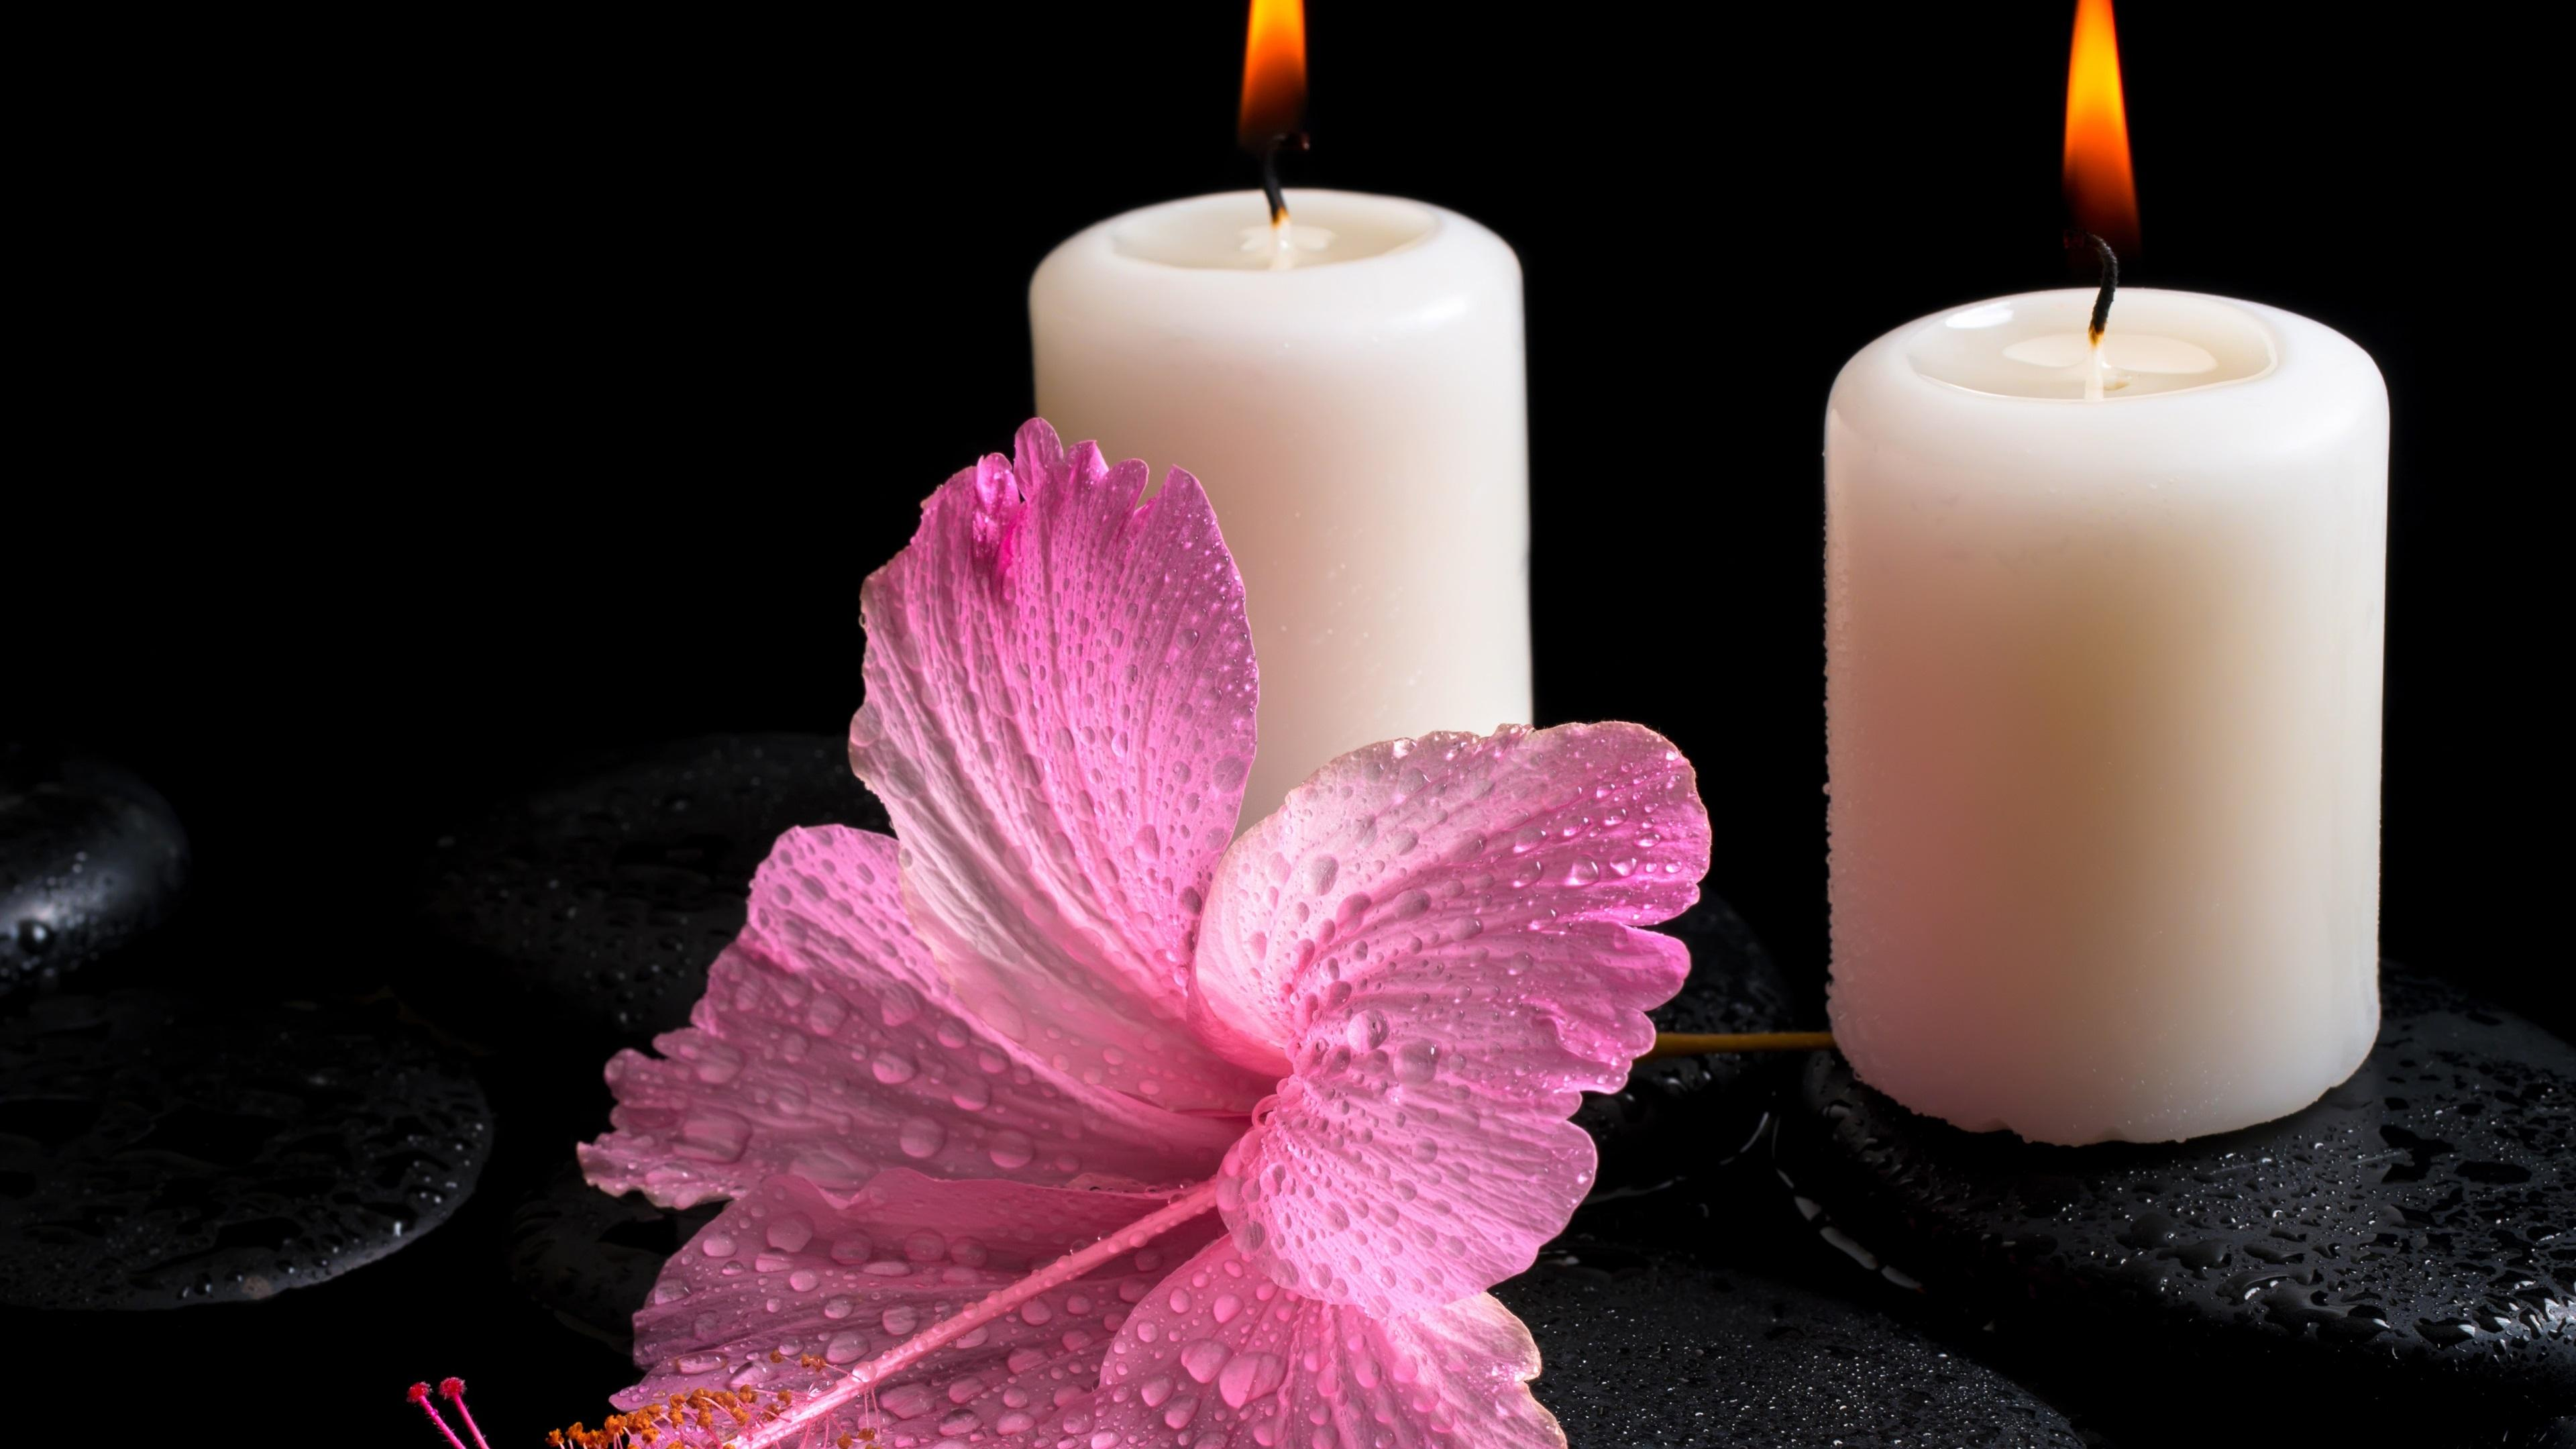 Flowers And Candle Lights Wallpapers Wallpaper Cave